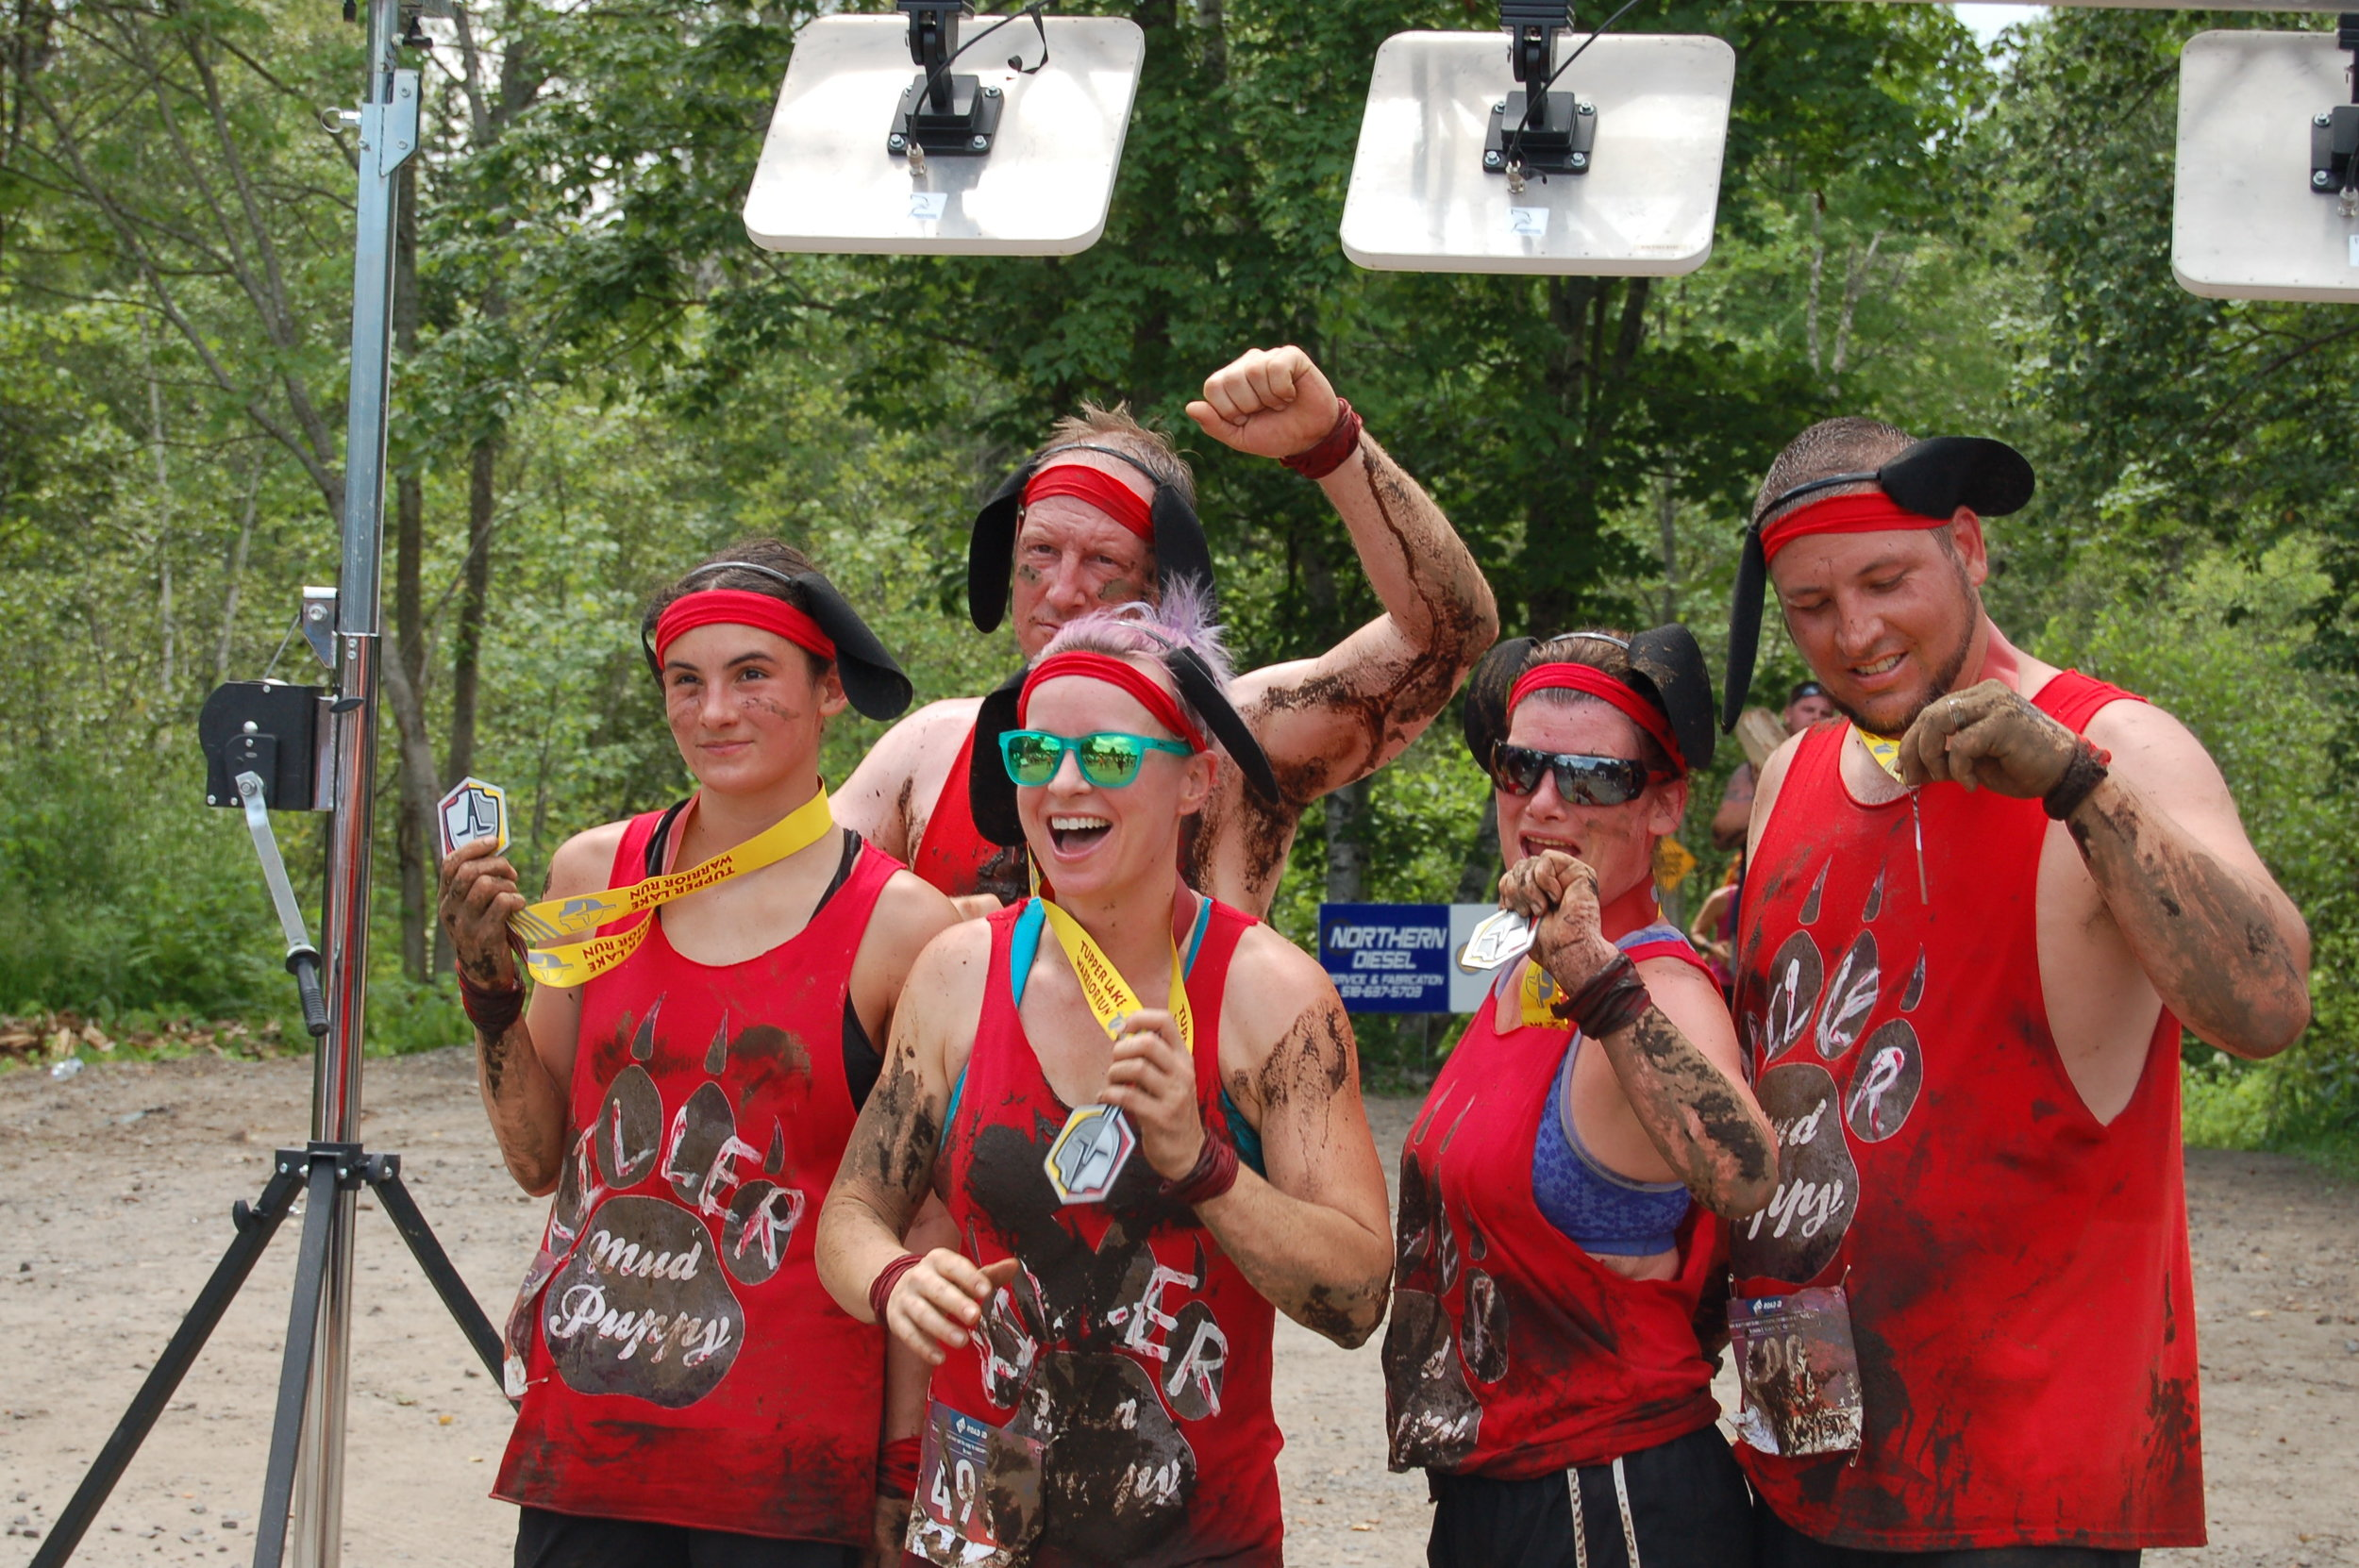 The Killer Mud Puppies show off their medals after the run.